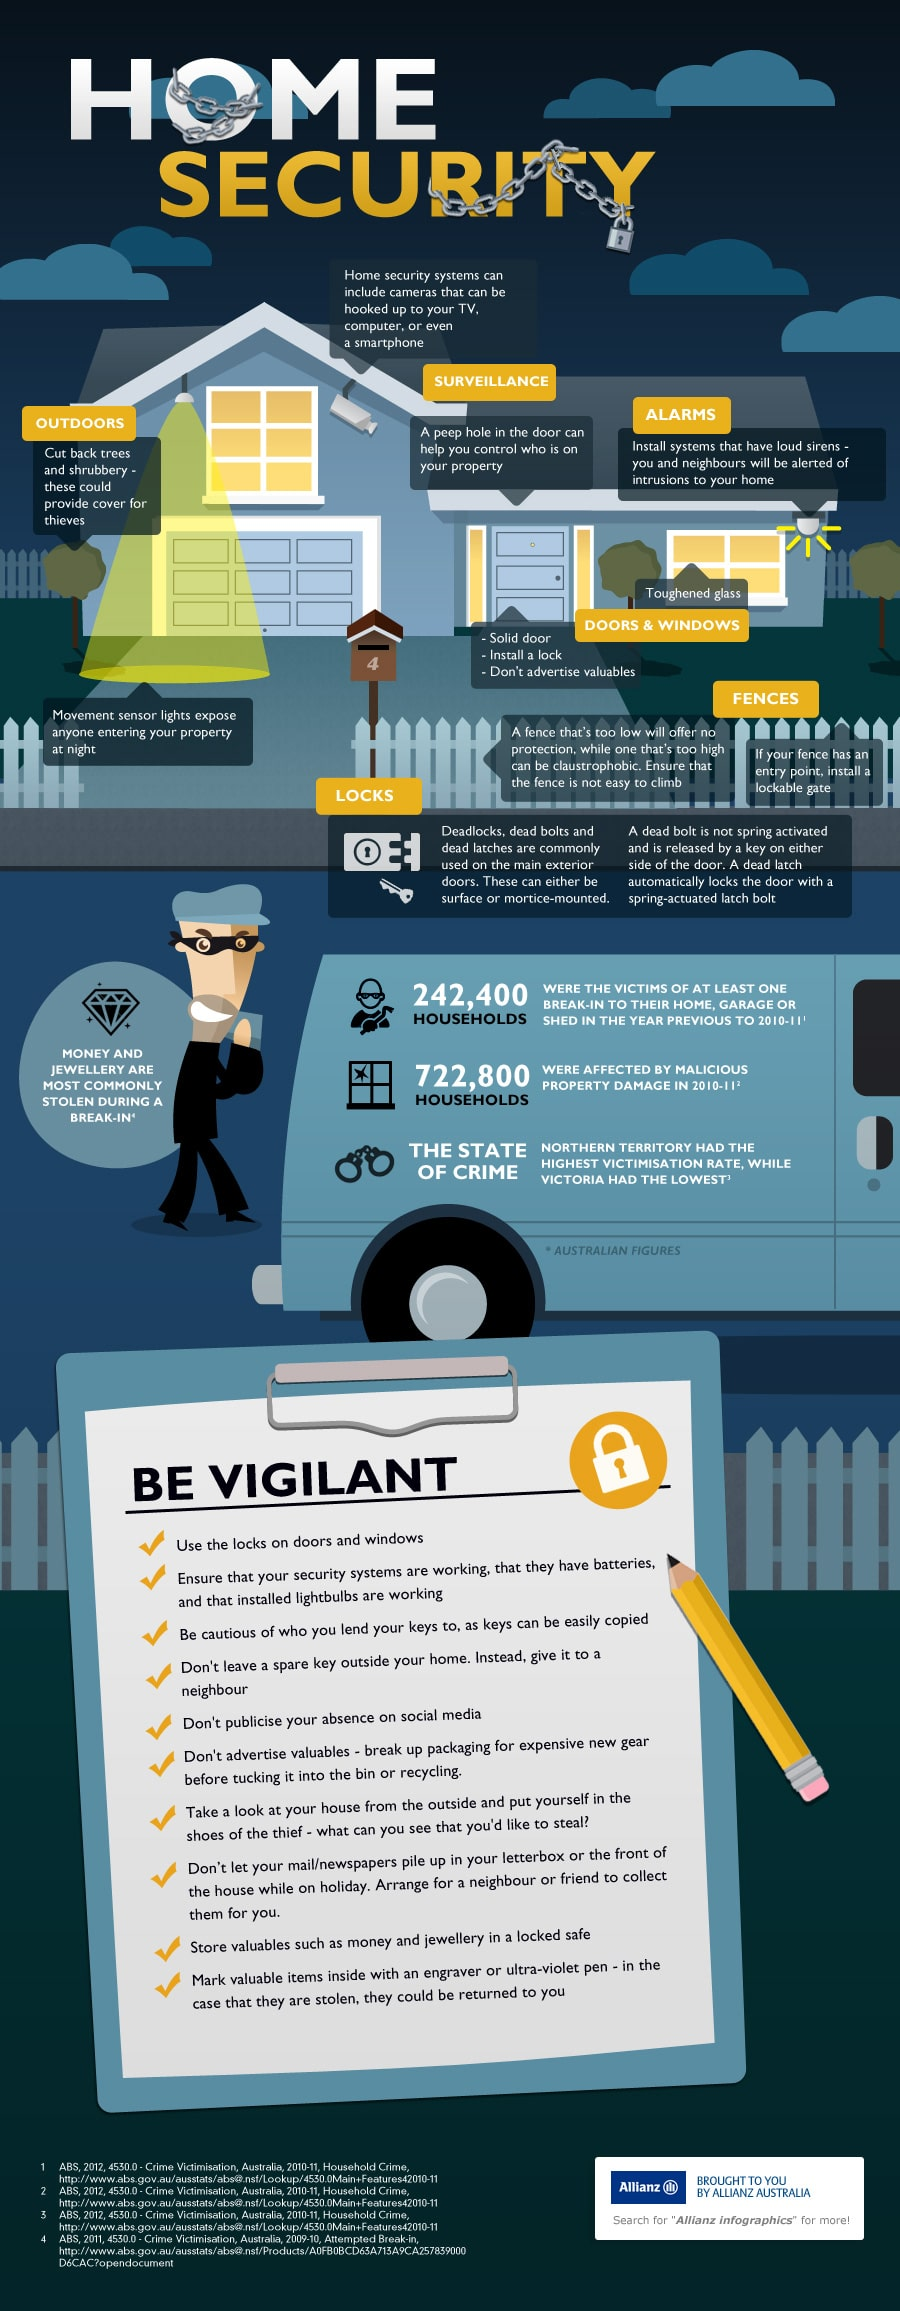 allianz-home-insurance-infographic-security